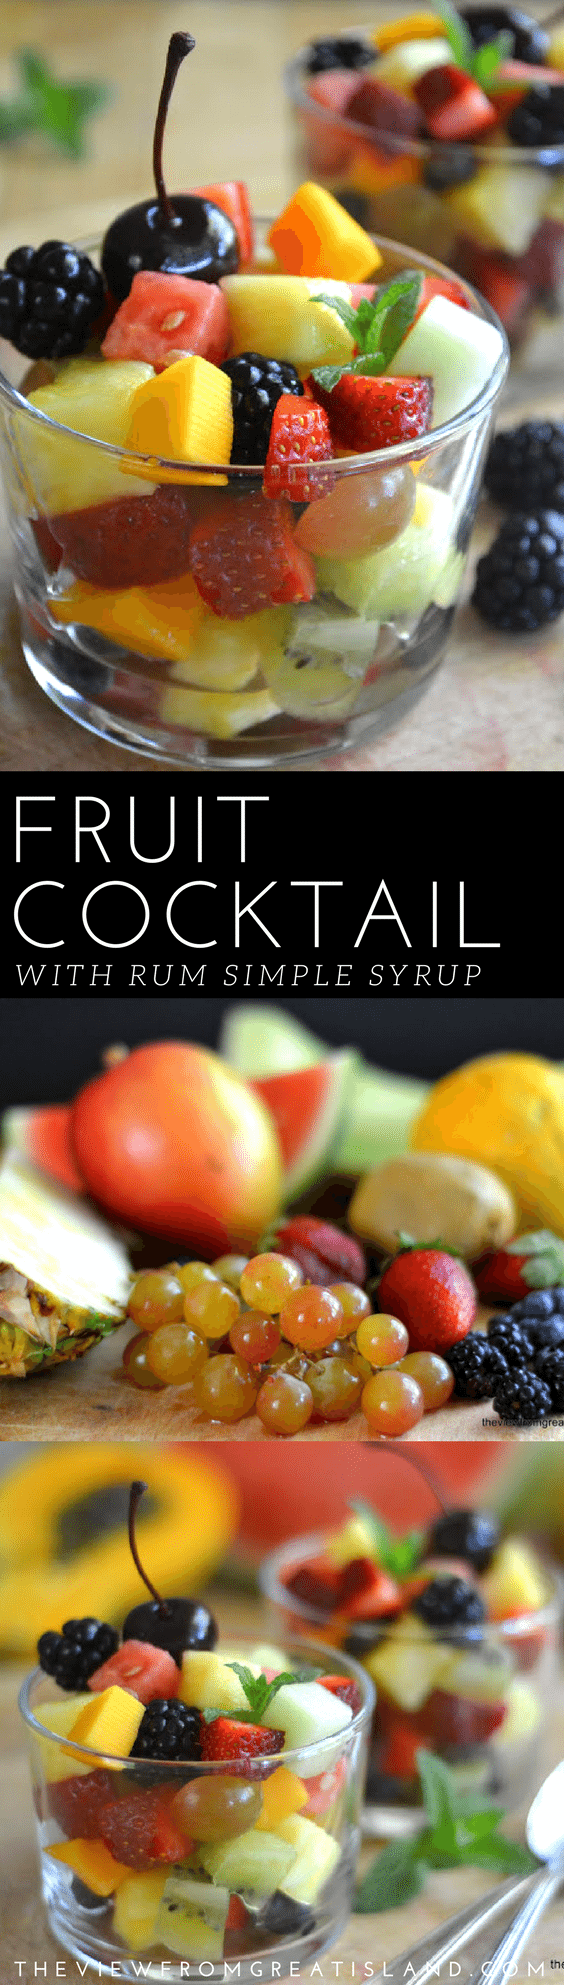 Fruit Cocktail with Rum Simple Syrup is an updated take on a retro-style dessert. Using fresh fruit and homemade rum-infused simple syrup takes this classic to a whole new level! #fruitcocktail #fruitsalad #dessert #fruit #healthydessert #rum #healthy #appetizer #sidedish #simplesyrup